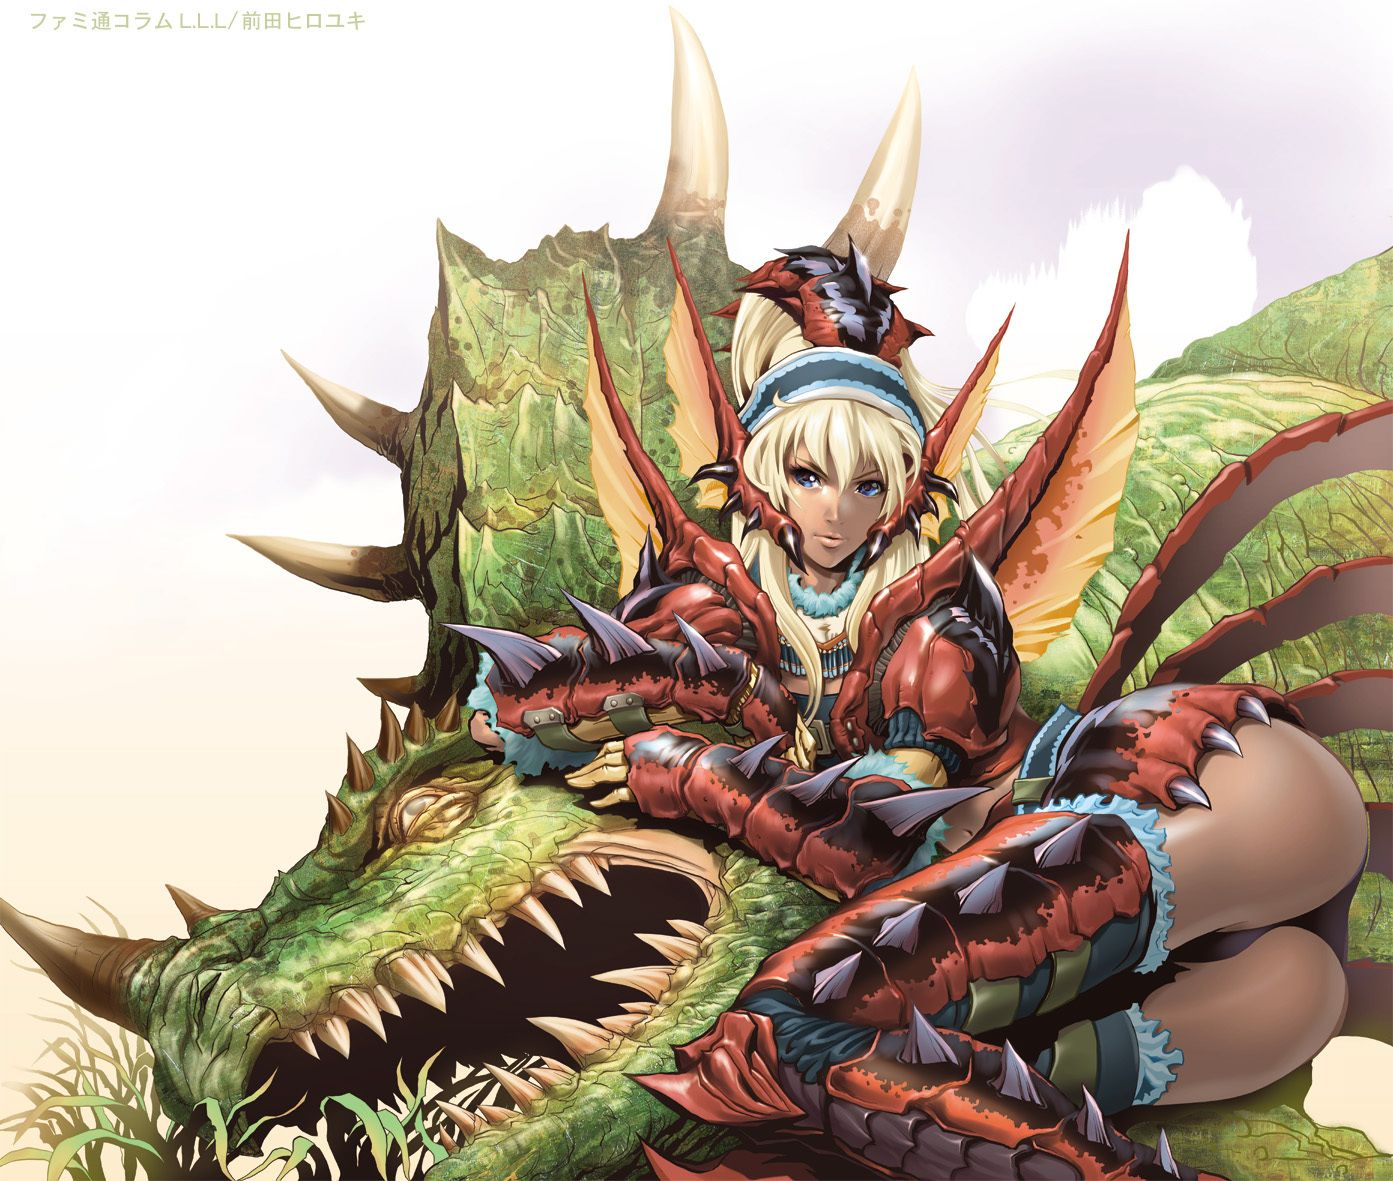 Vertical portrait hd resolution in 2160x3840, 1080x1920. Monster Hunter Phone HD Wallpapers - Wallpaper Cave